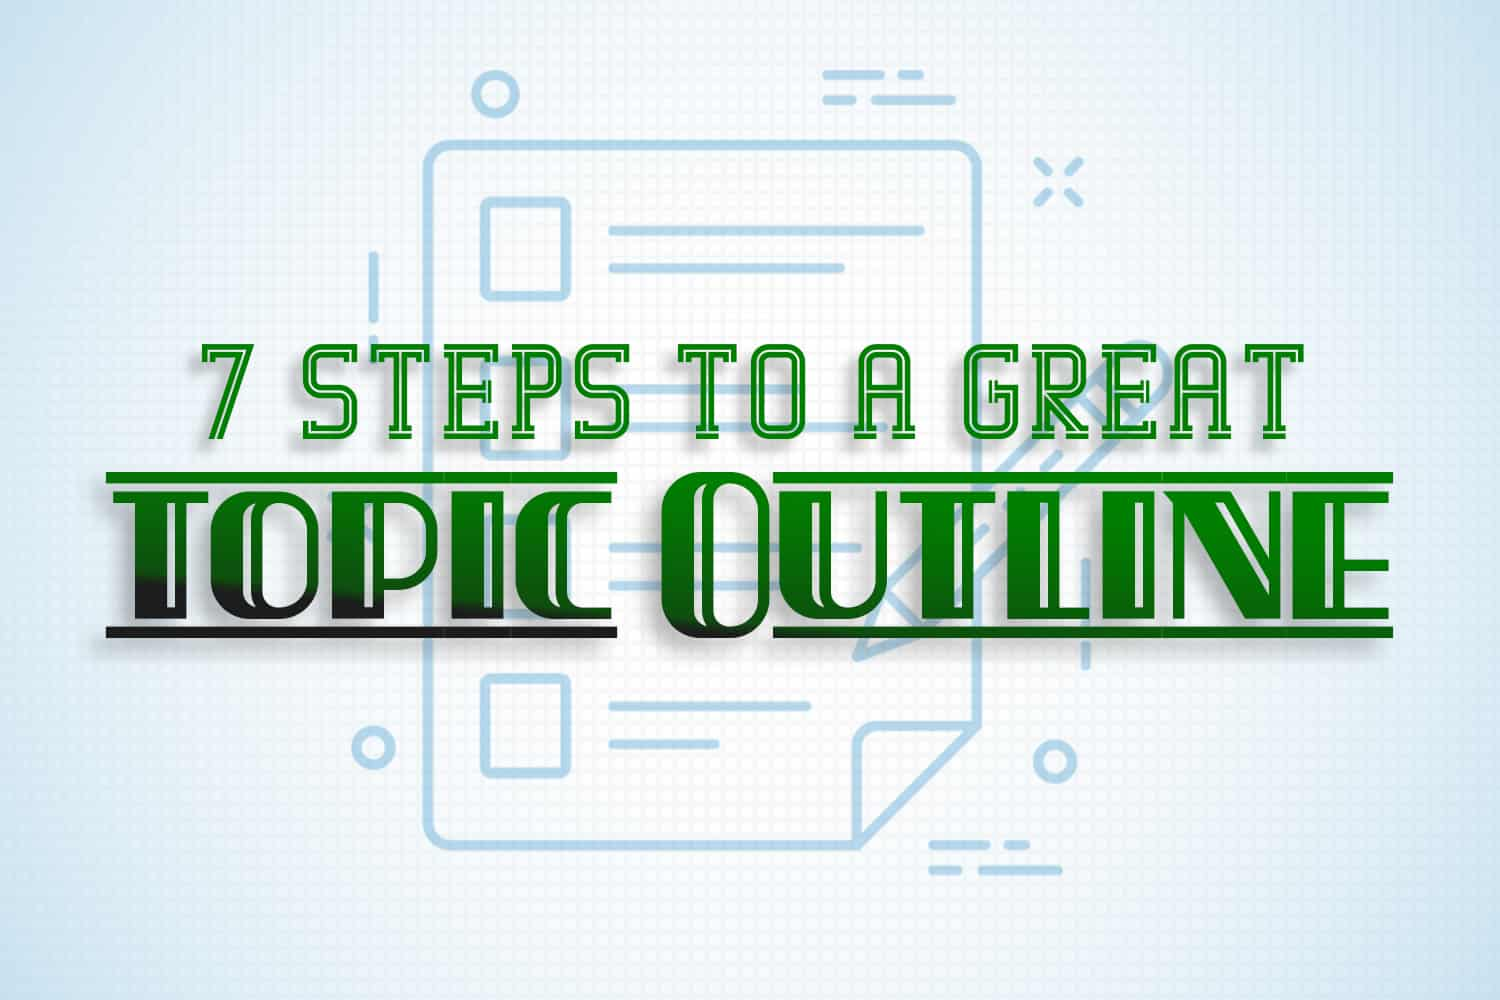 7 Steps to a Great Topic Outline